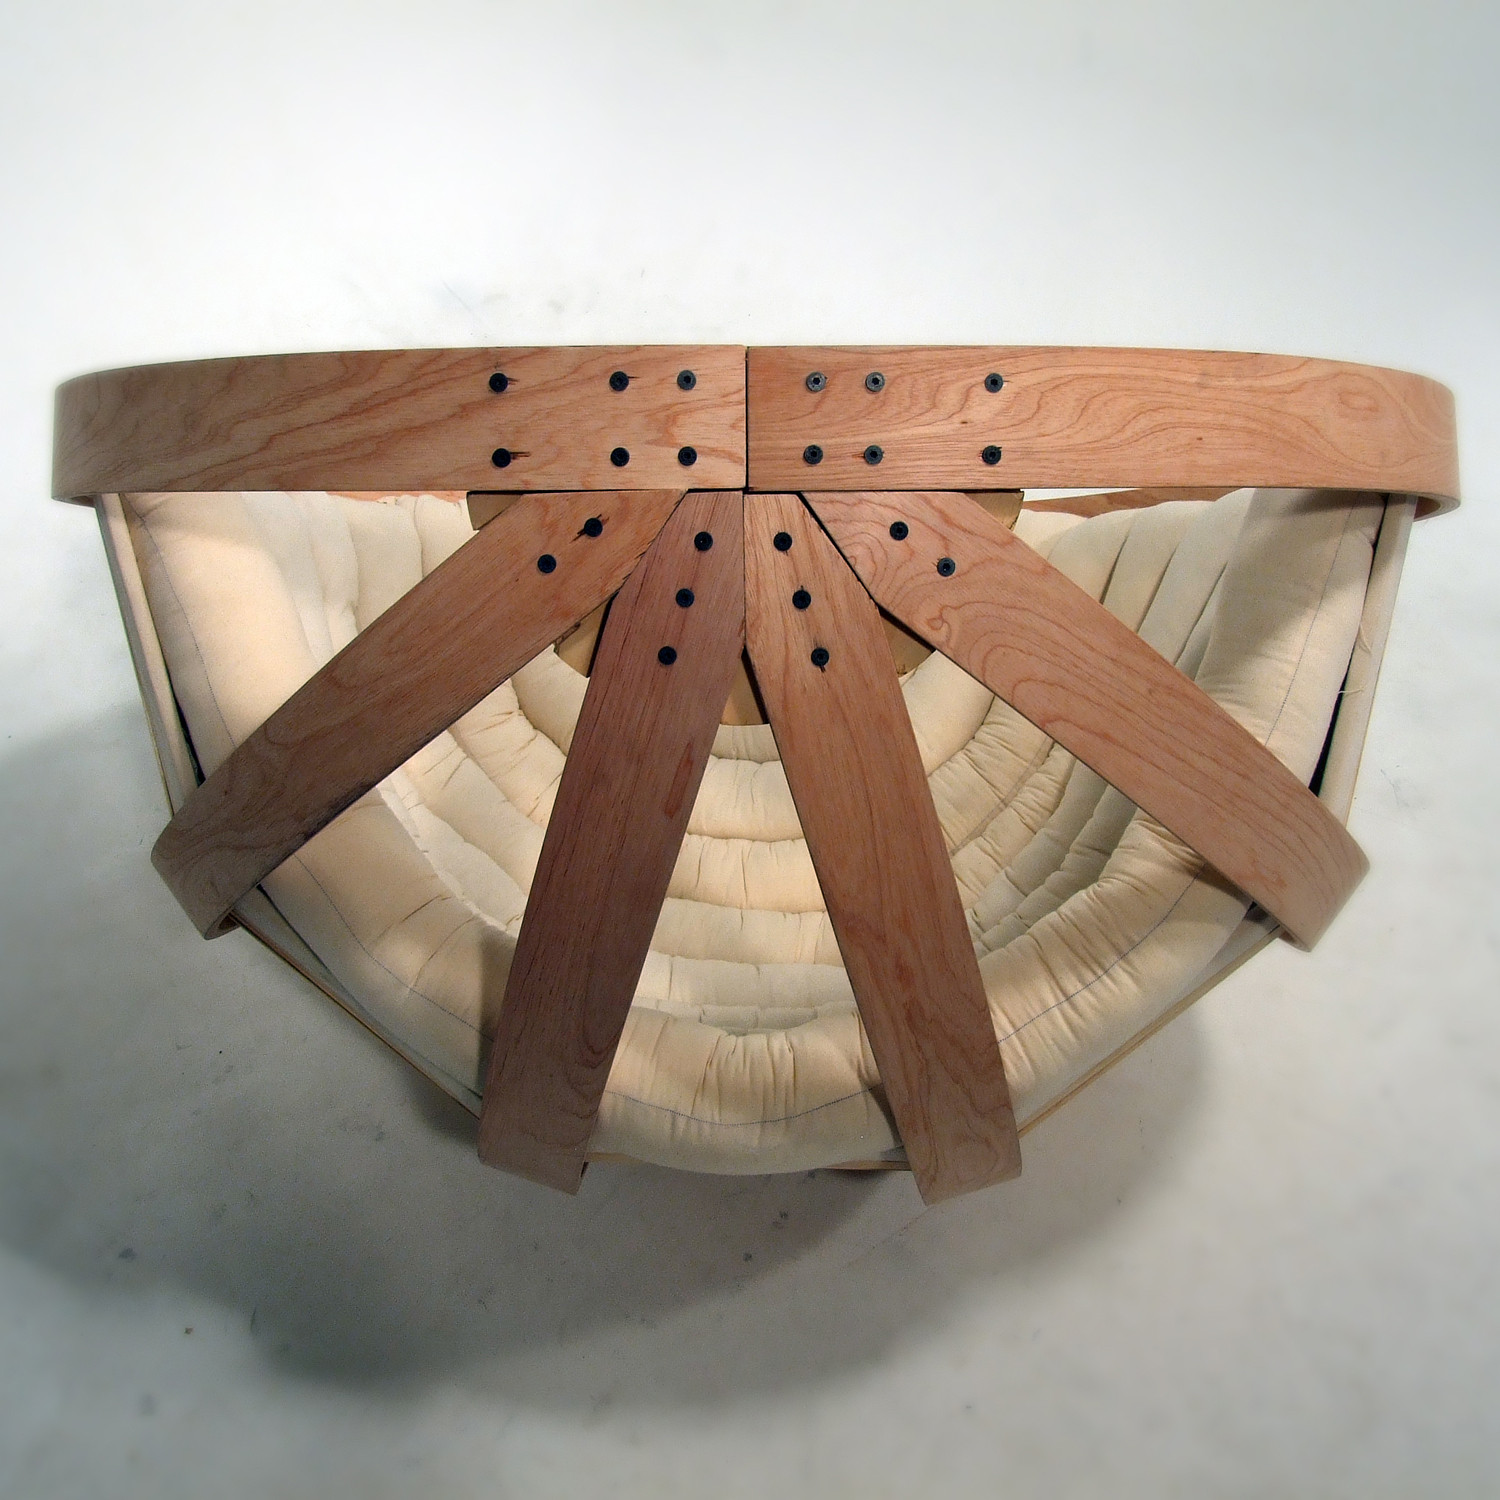 cradle chair  clarkson design  touch of modern - cradle chair